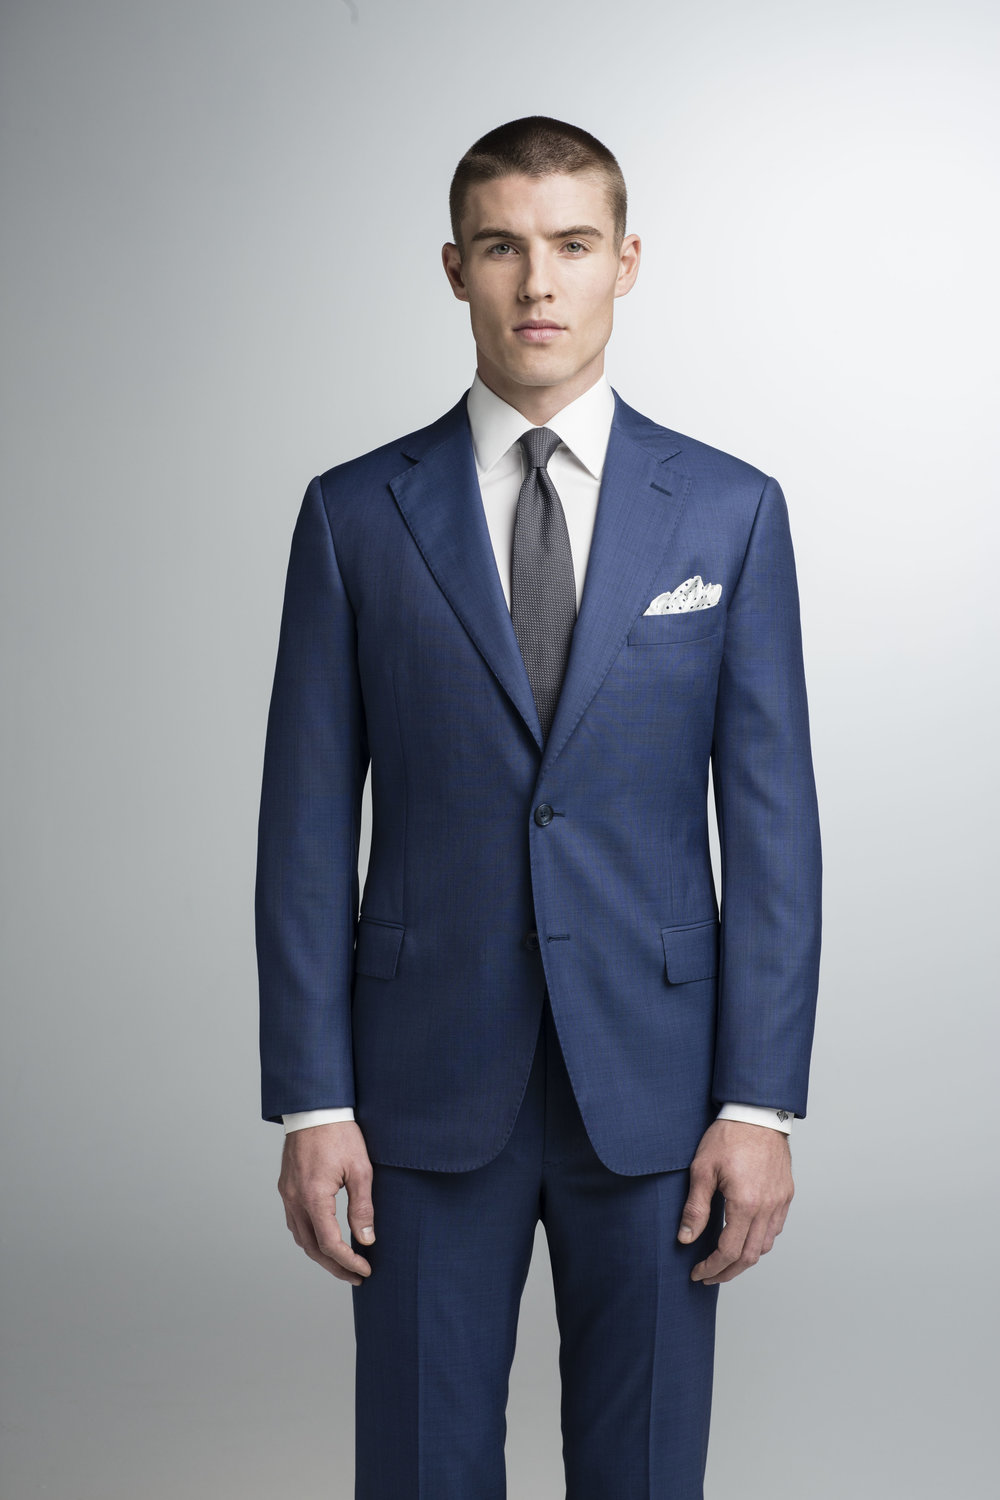 jhilburn custom suits bold blue suit for groom